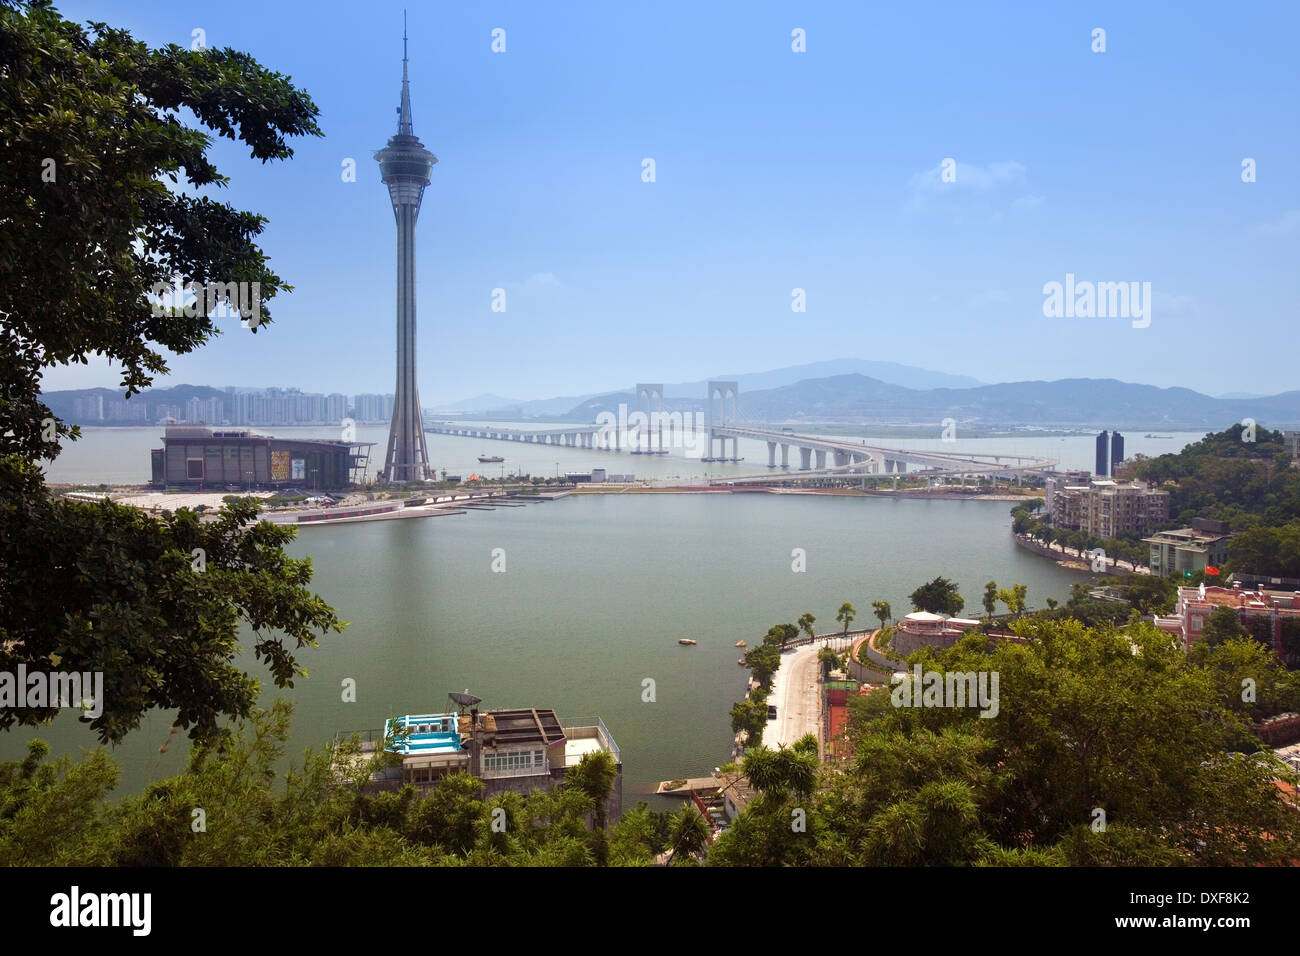 Macau on the western side of the Pearl River Delta. - Stock Image